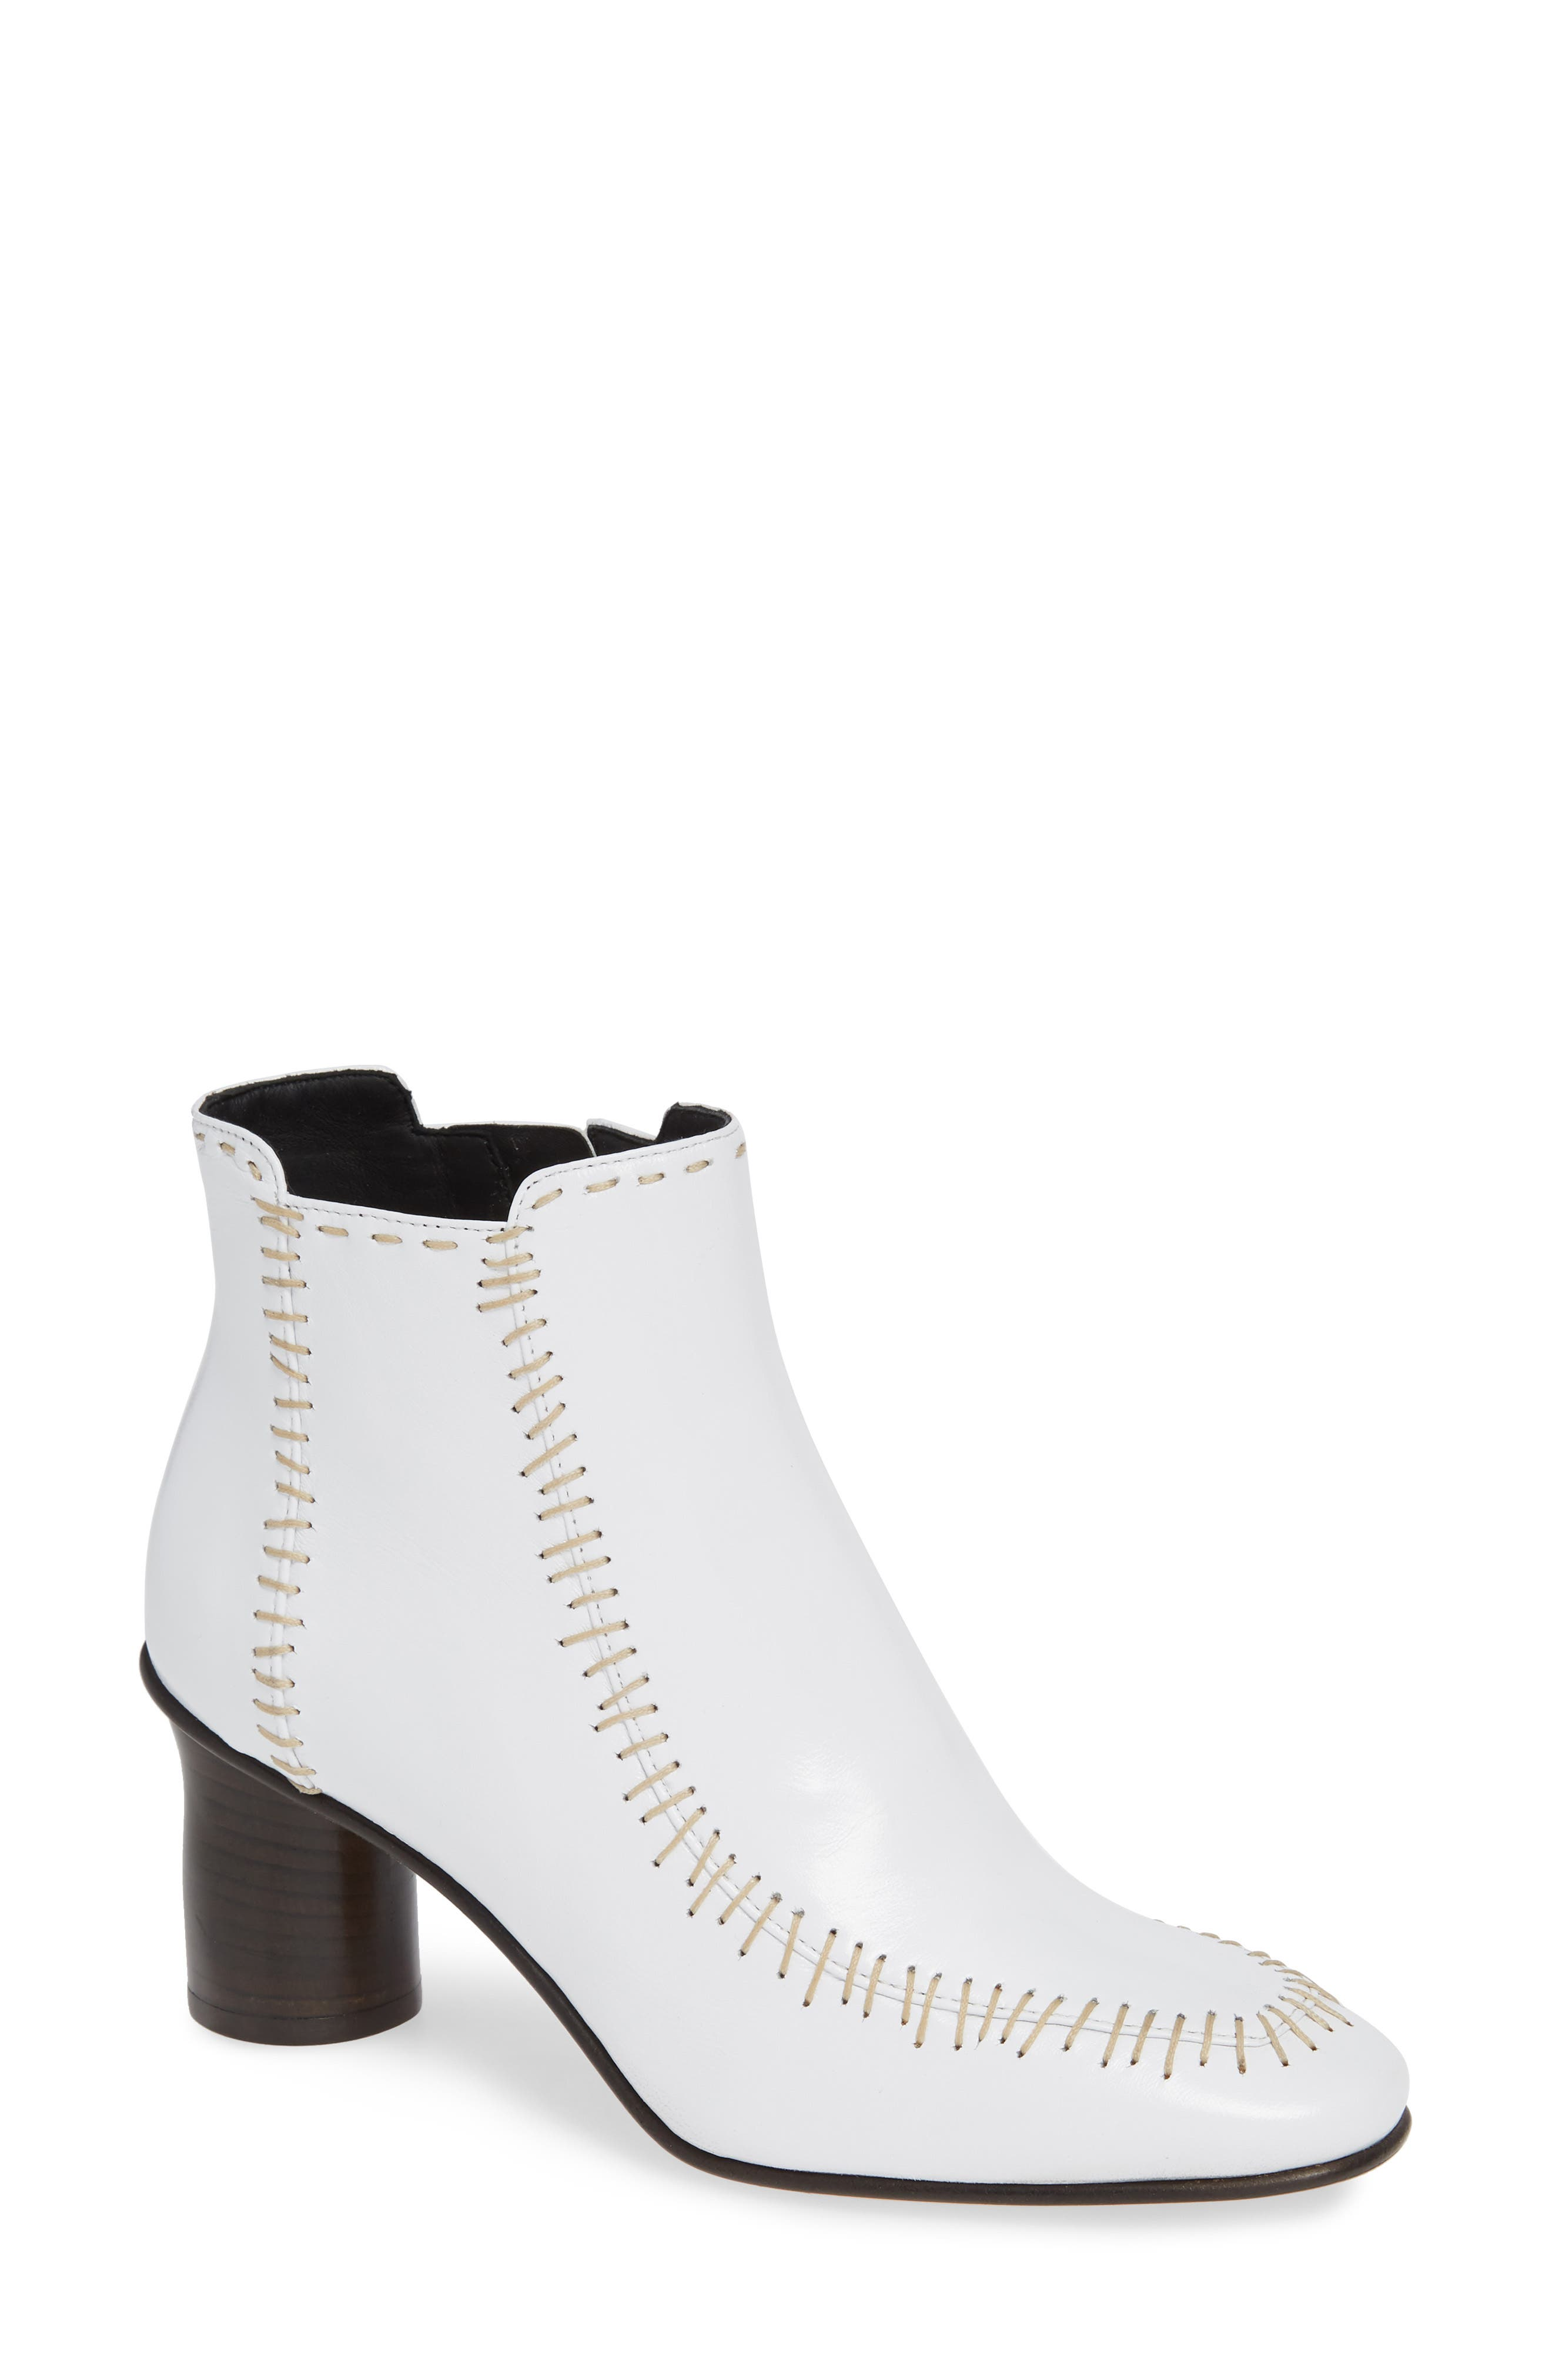 Stitch Leather Bootie,                             Main thumbnail 1, color,                             WHITE